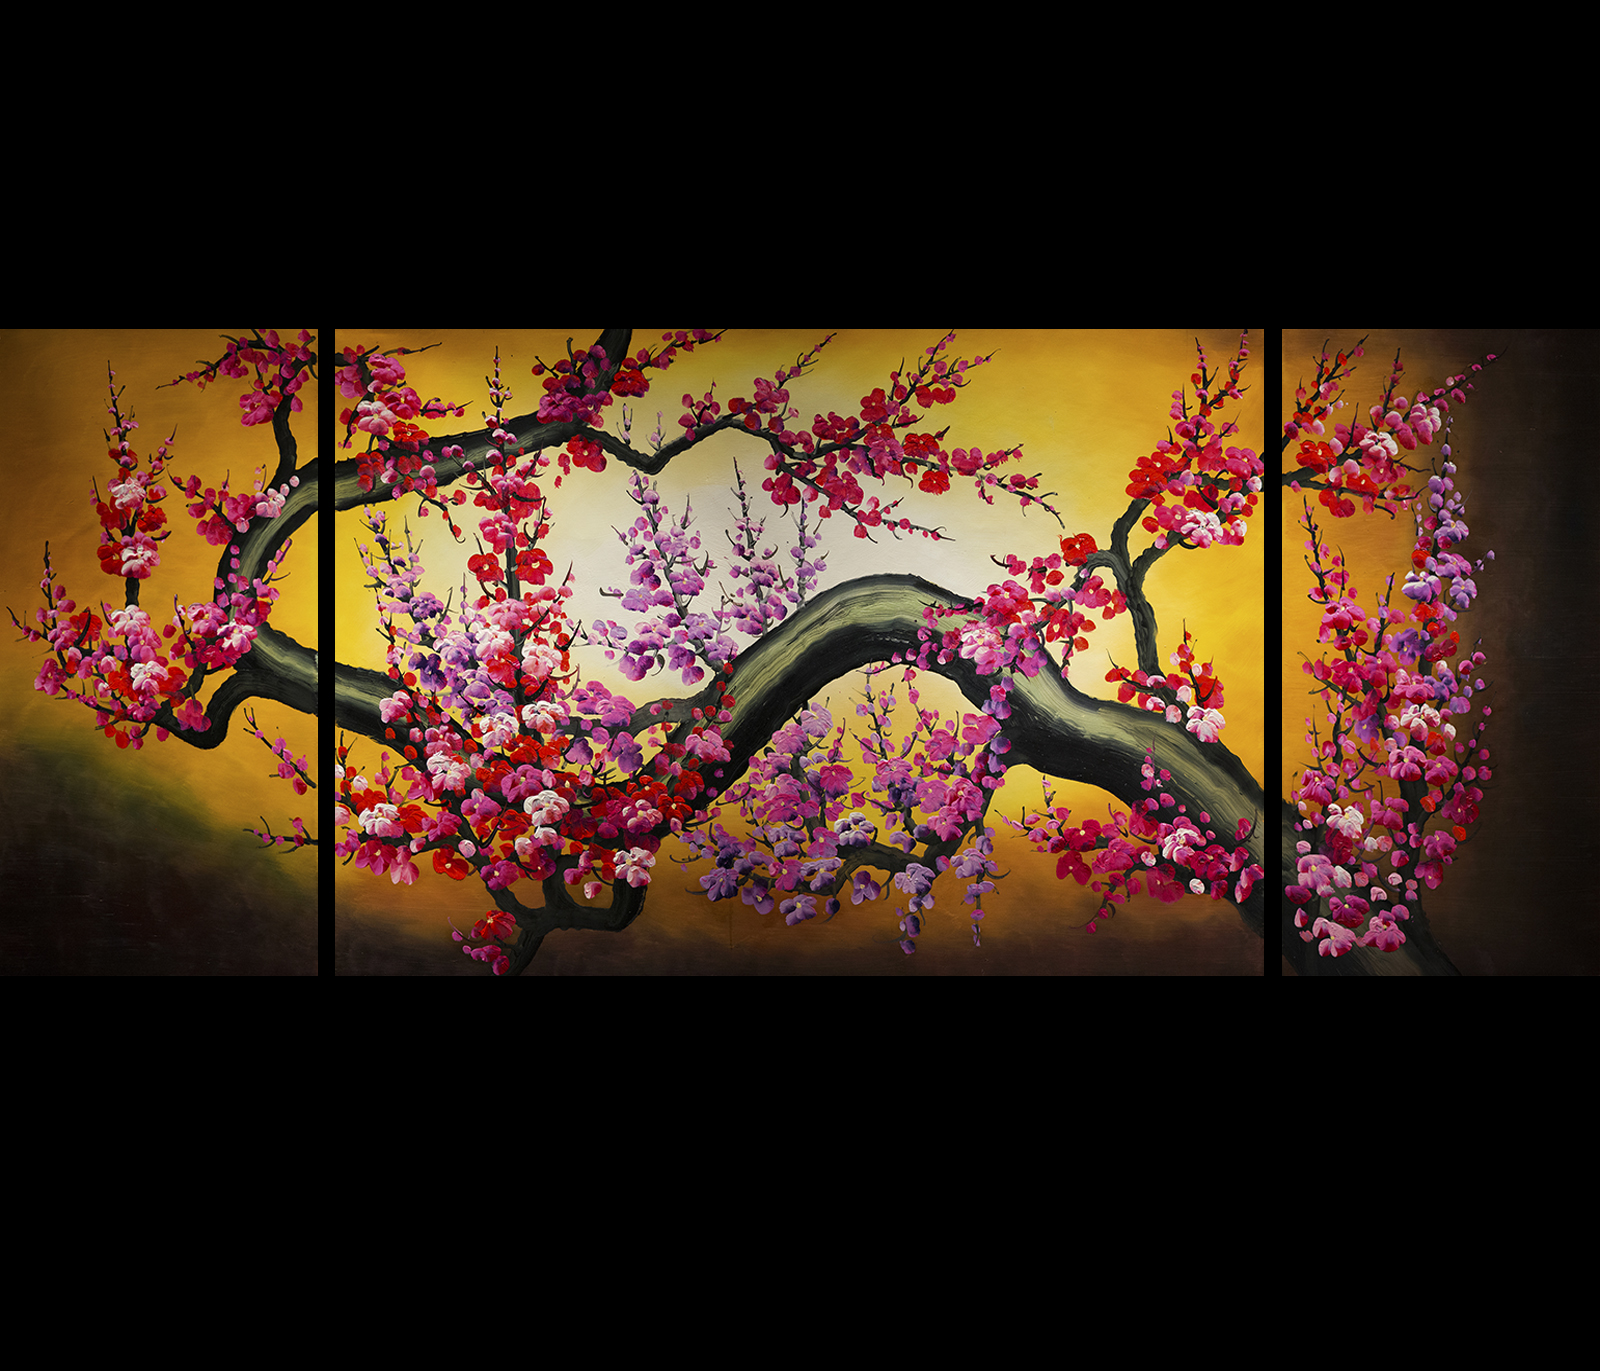 Cherry blossom painting feng shui painting canvas wall art for Canvas painting of cherry blossoms